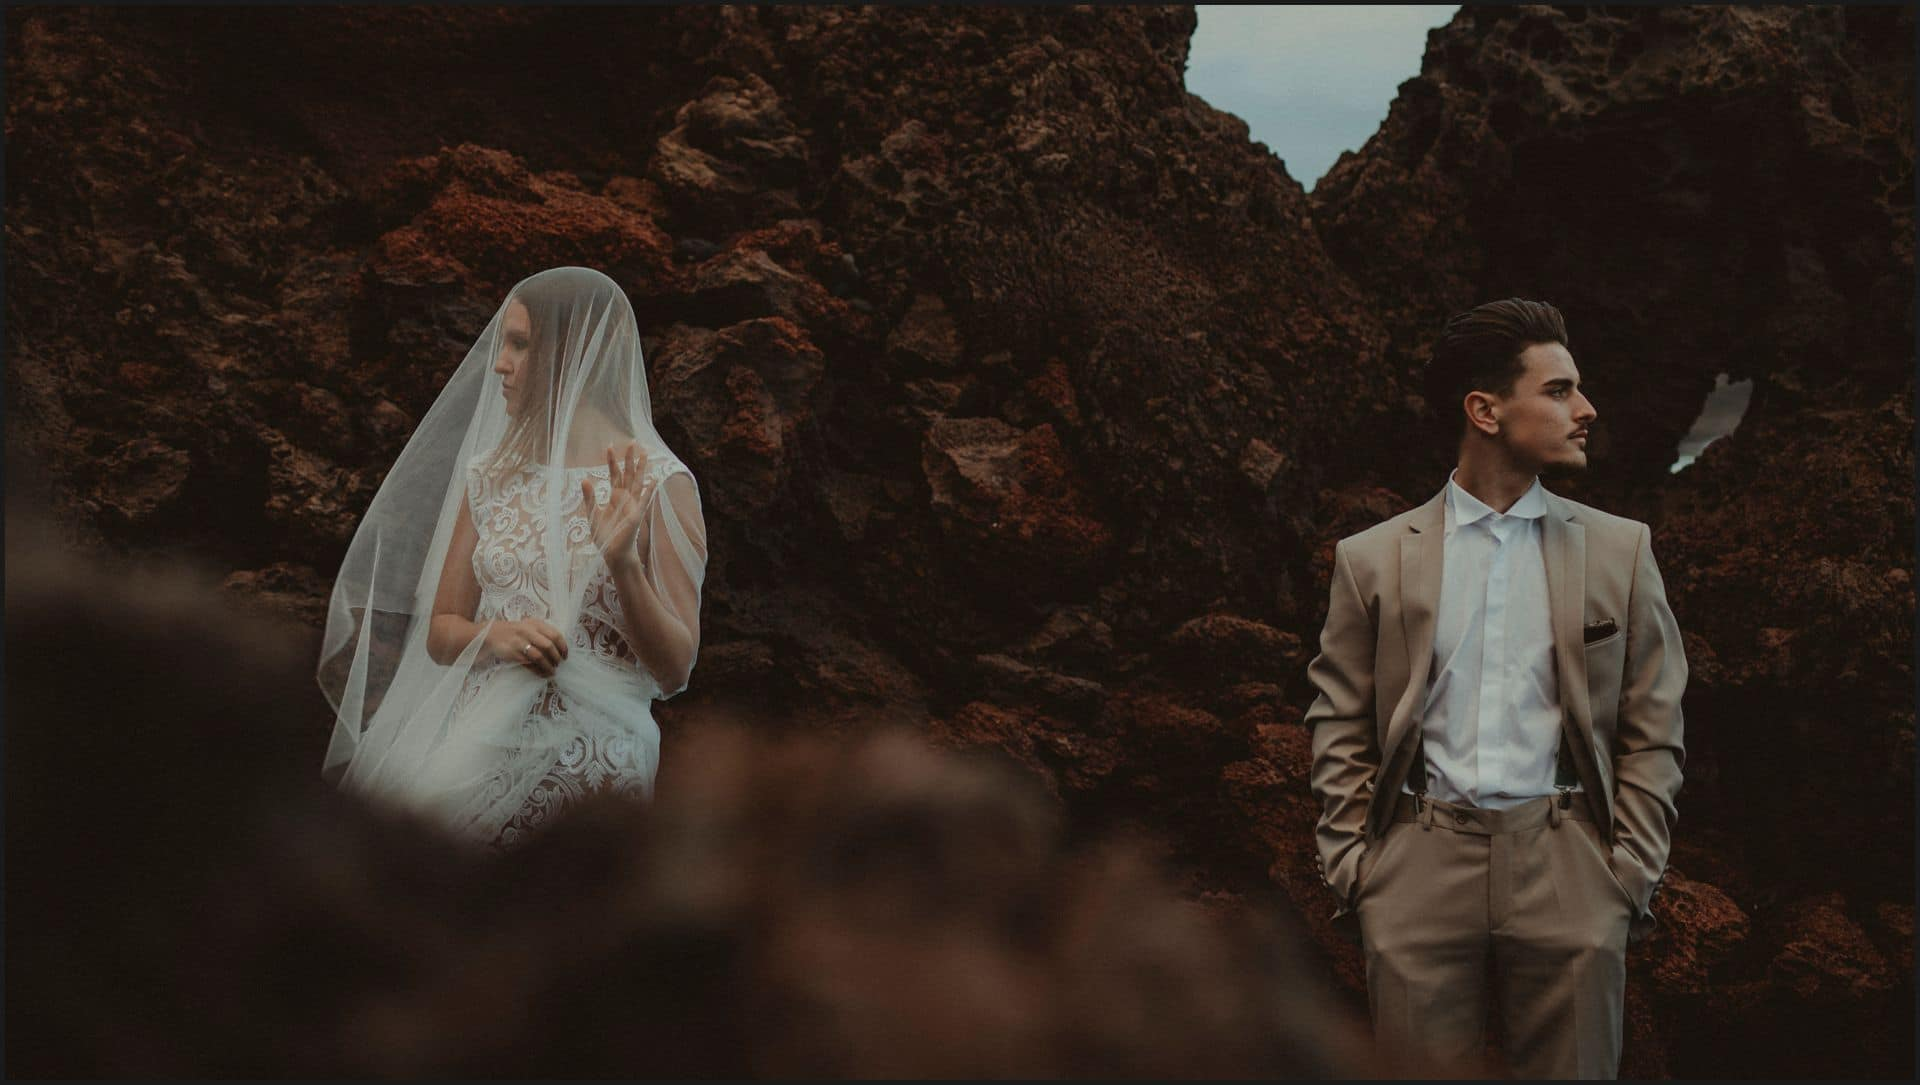 lanzarote, wedding, elopement, bride, groom, adventure wedding